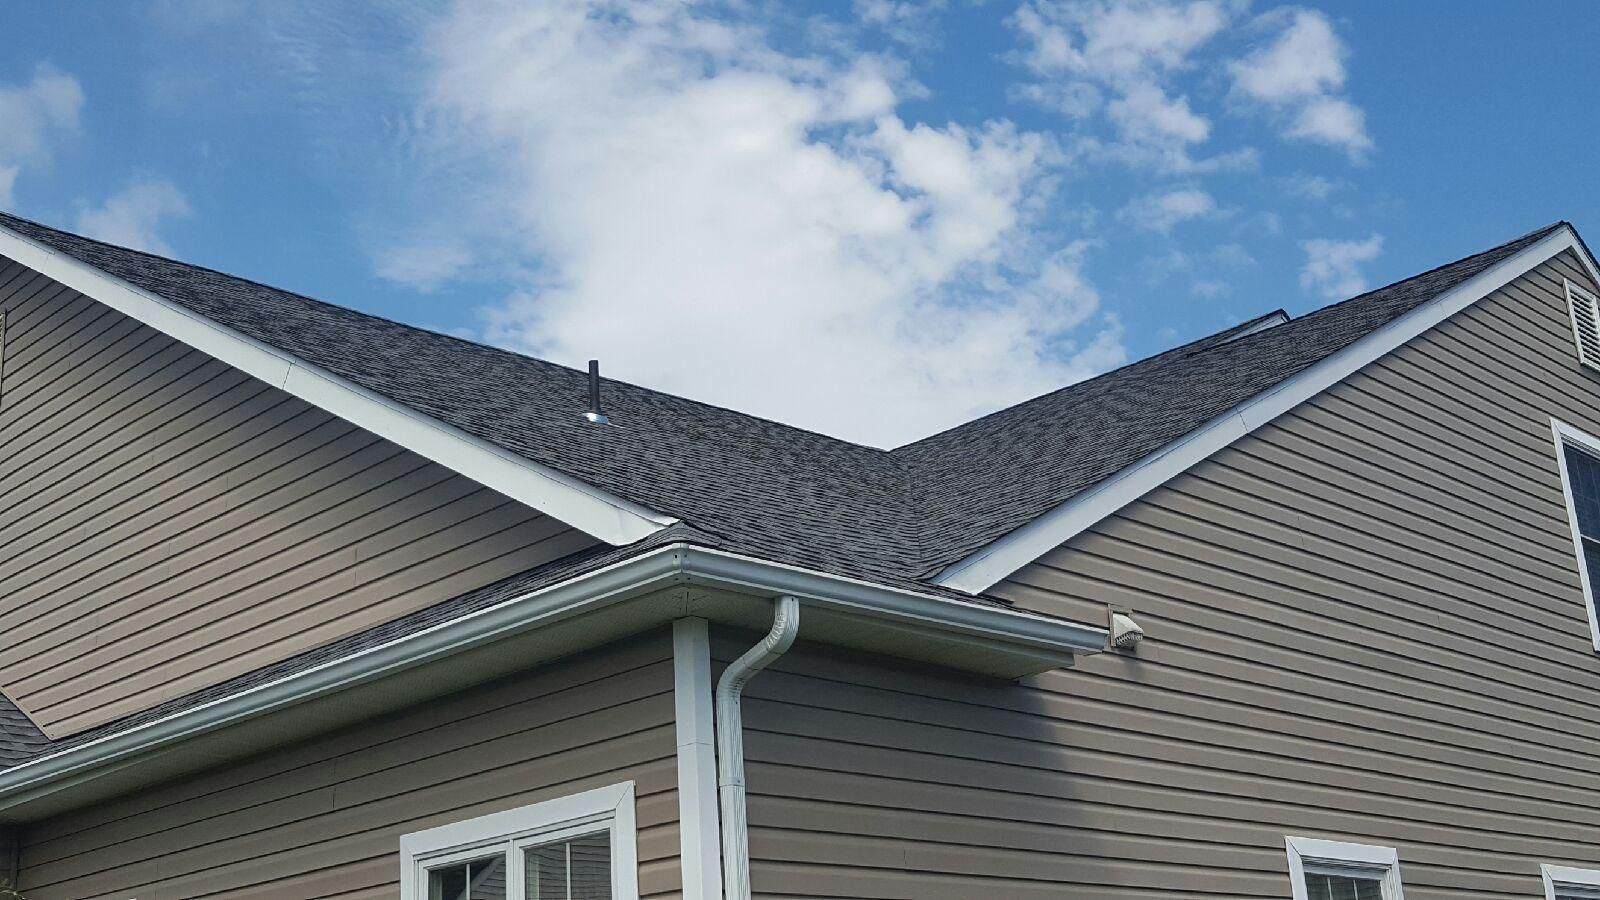 New Roof Over Existing Roof Reroofing Roofing Residential Roofing